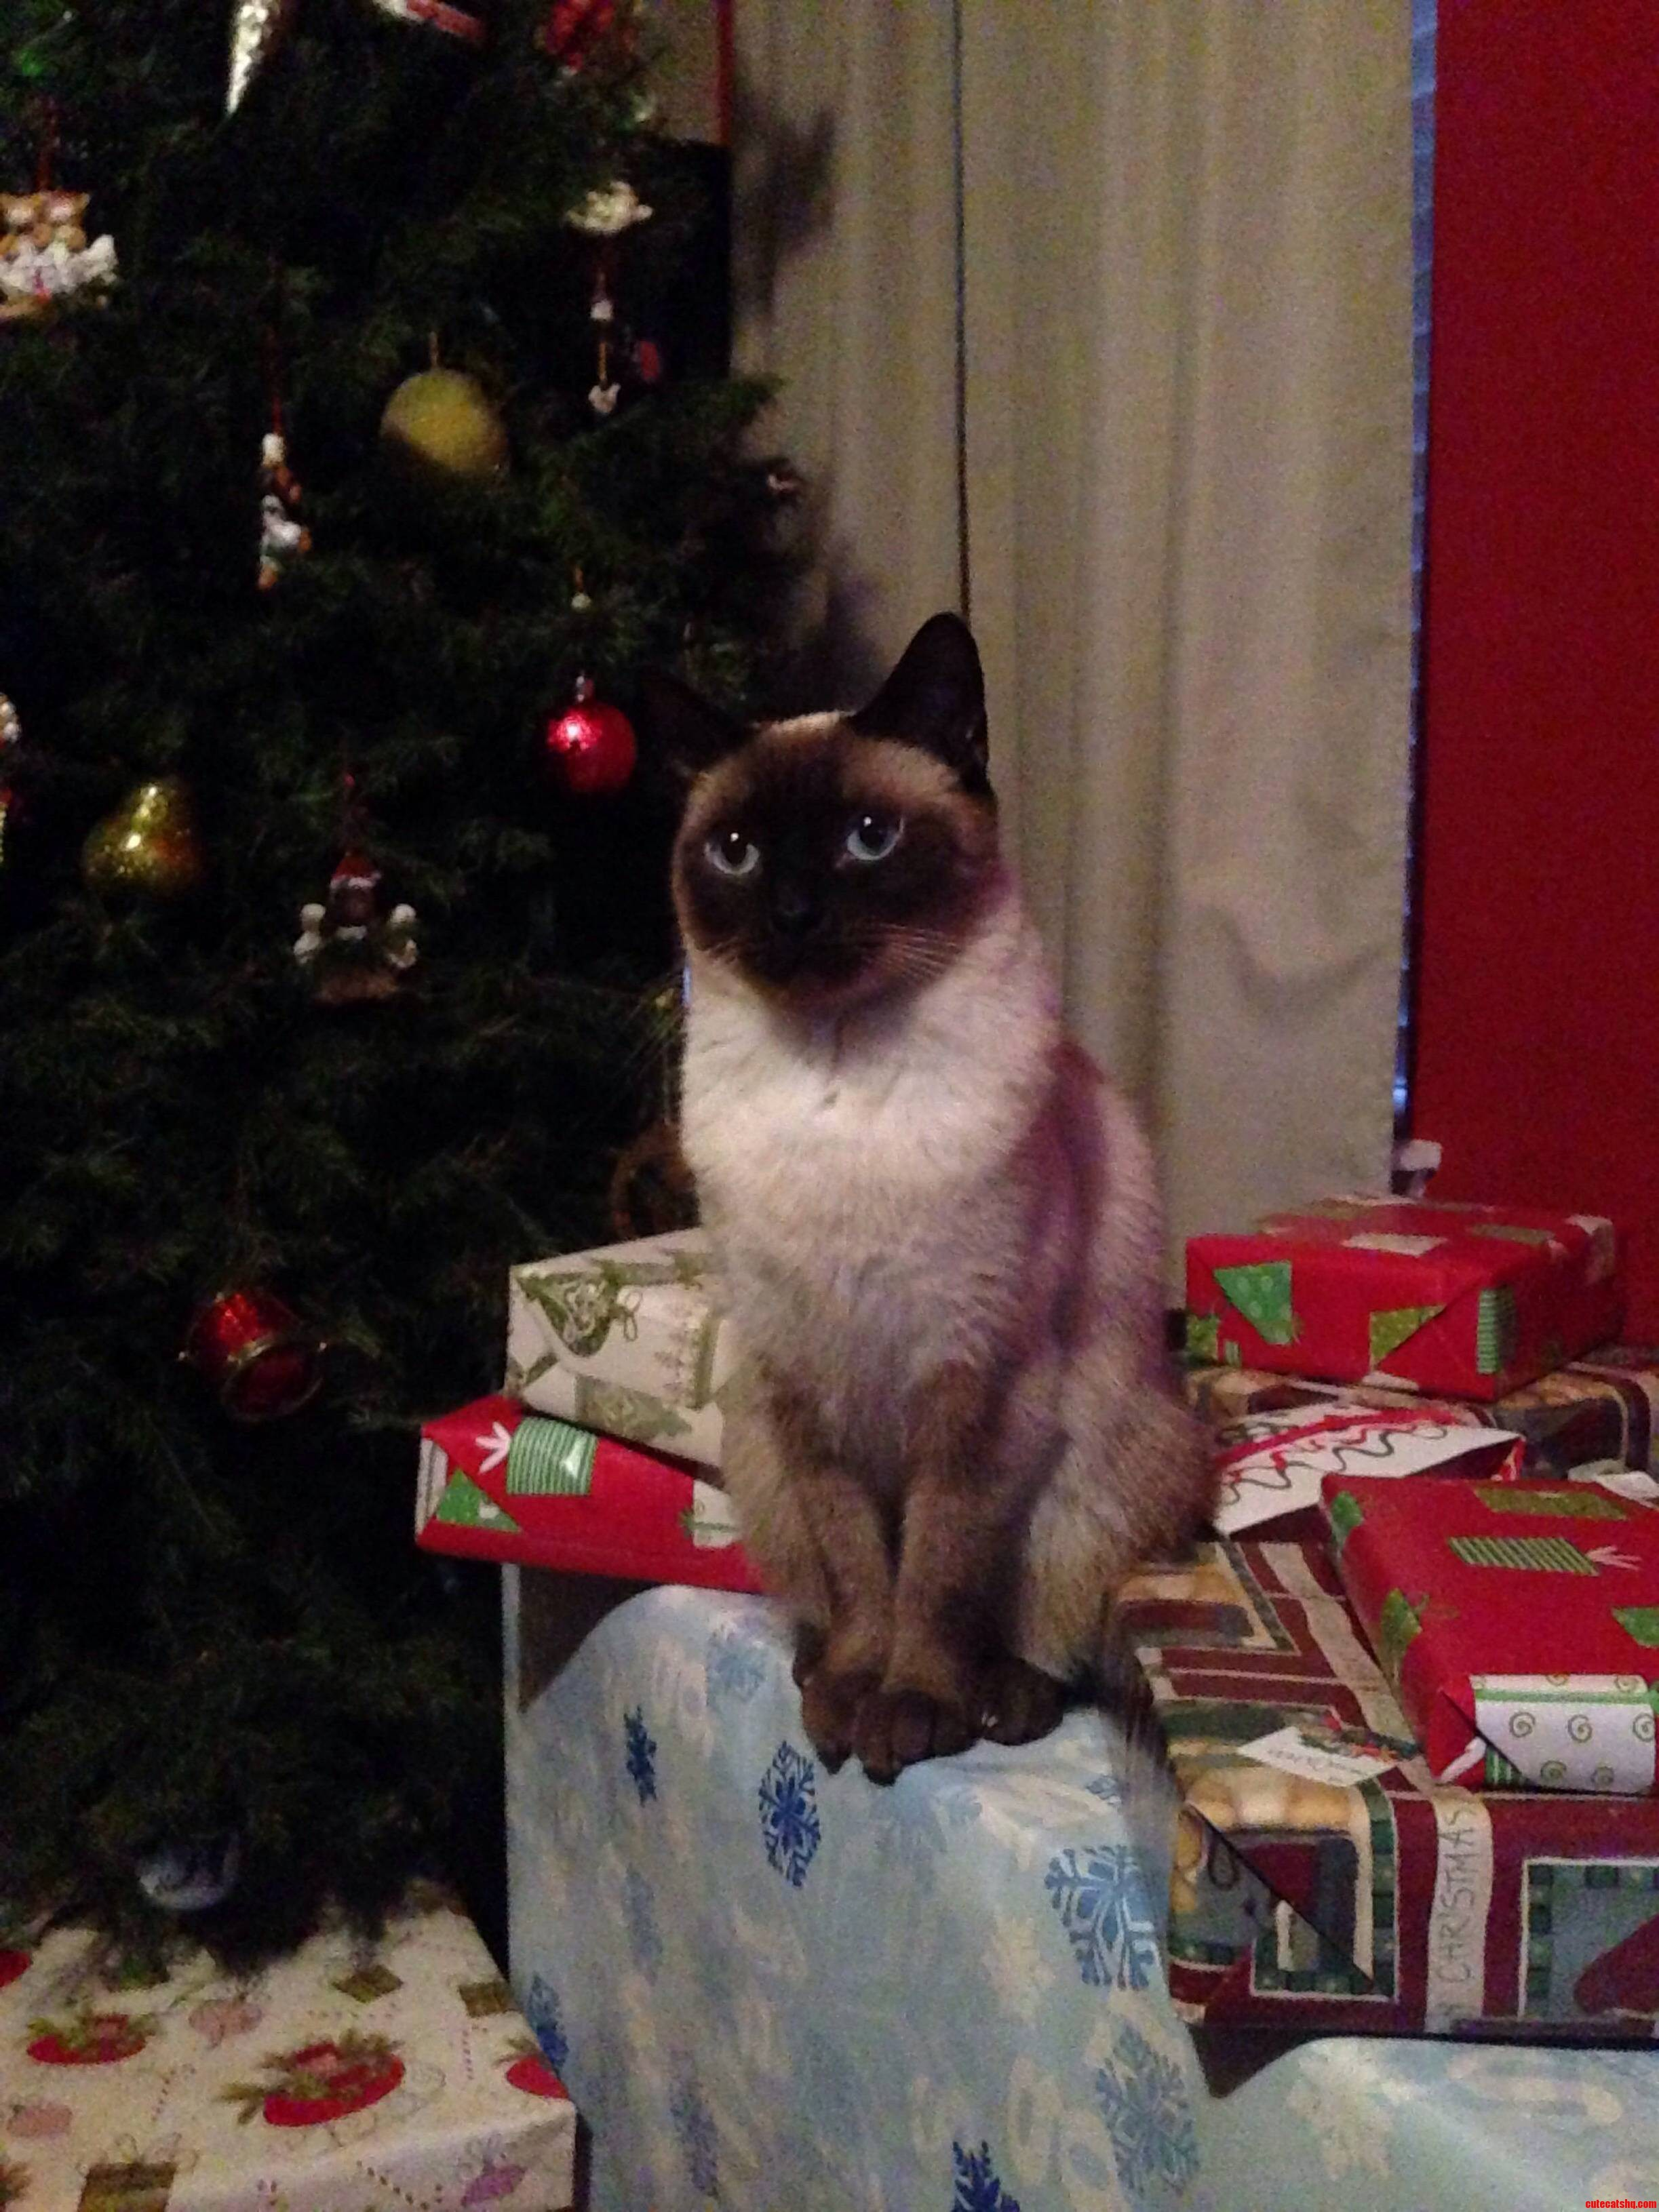 Shes Guarding The Presents.